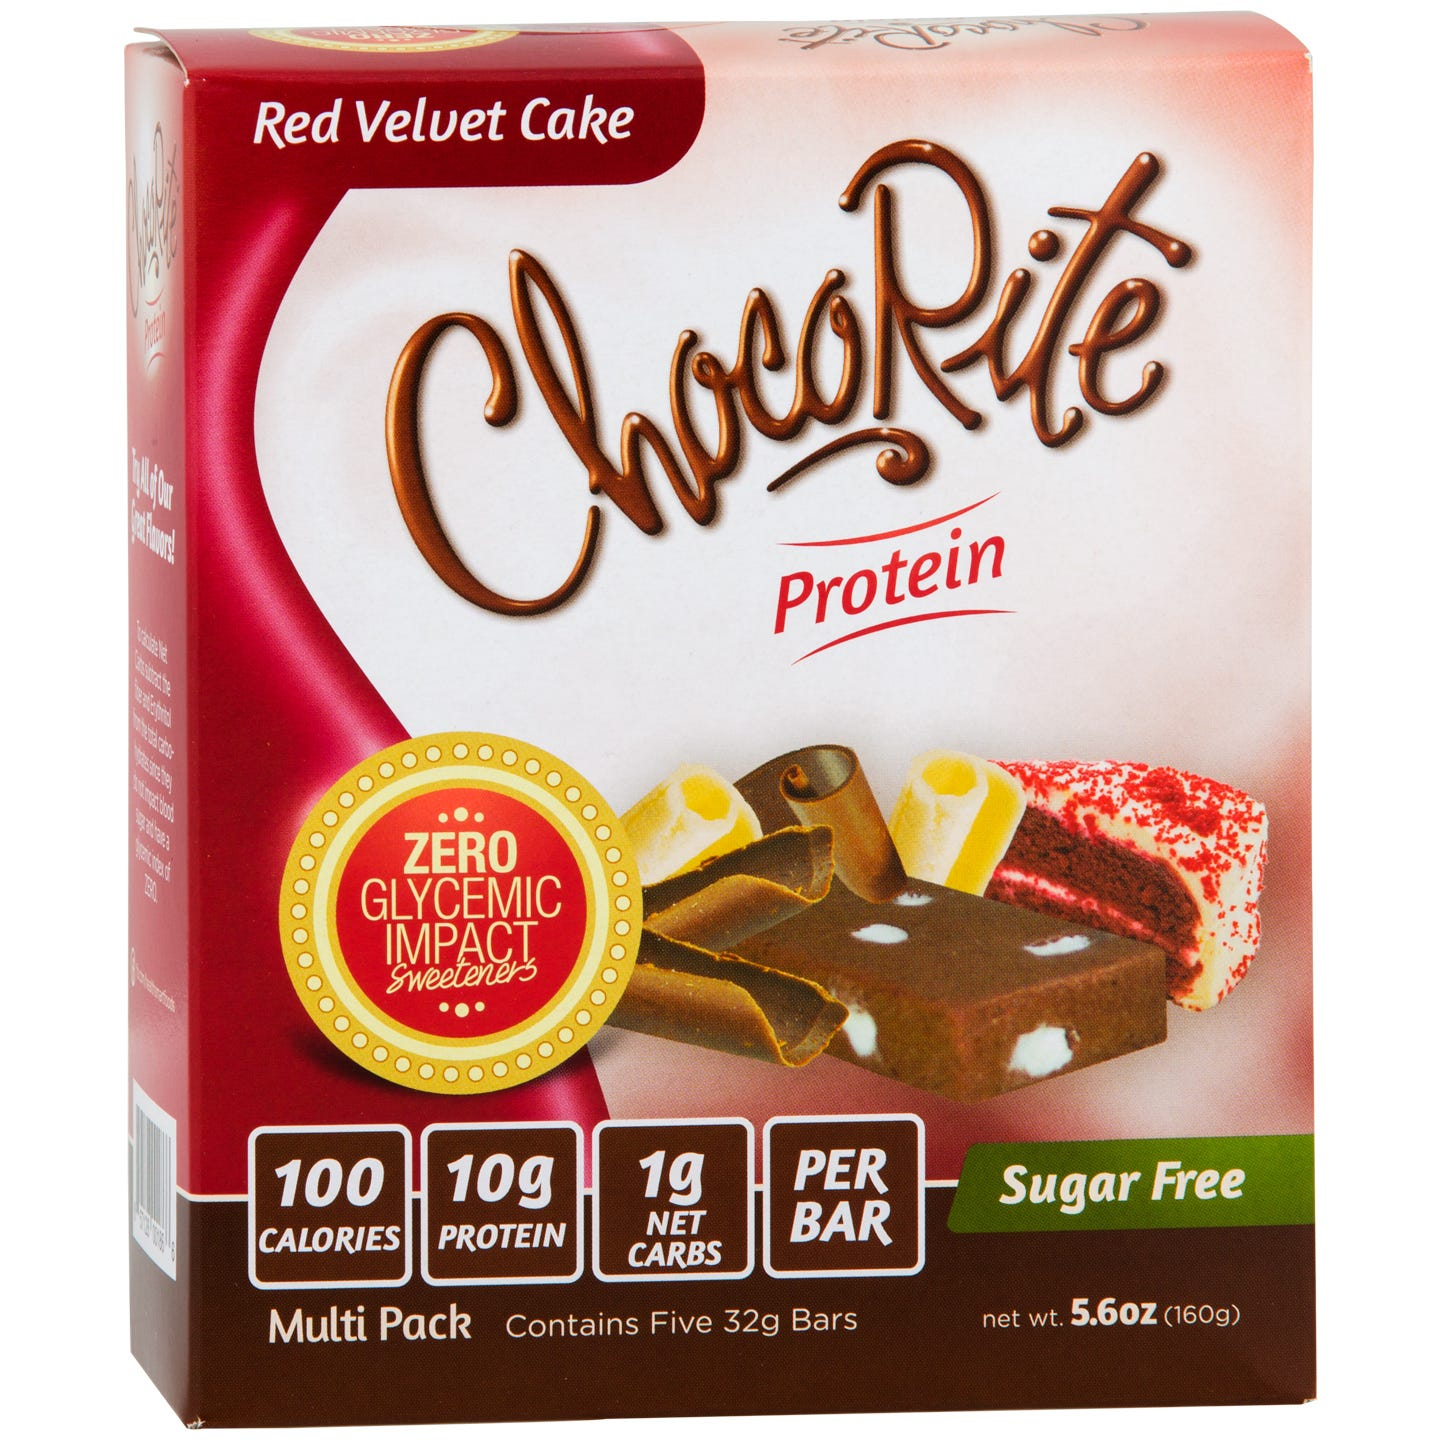 Sugar Free Protein Bar, Red Velvet Cake (5 Bars) - ChocoRite - Rapid Diet Weight Loss Products Shop